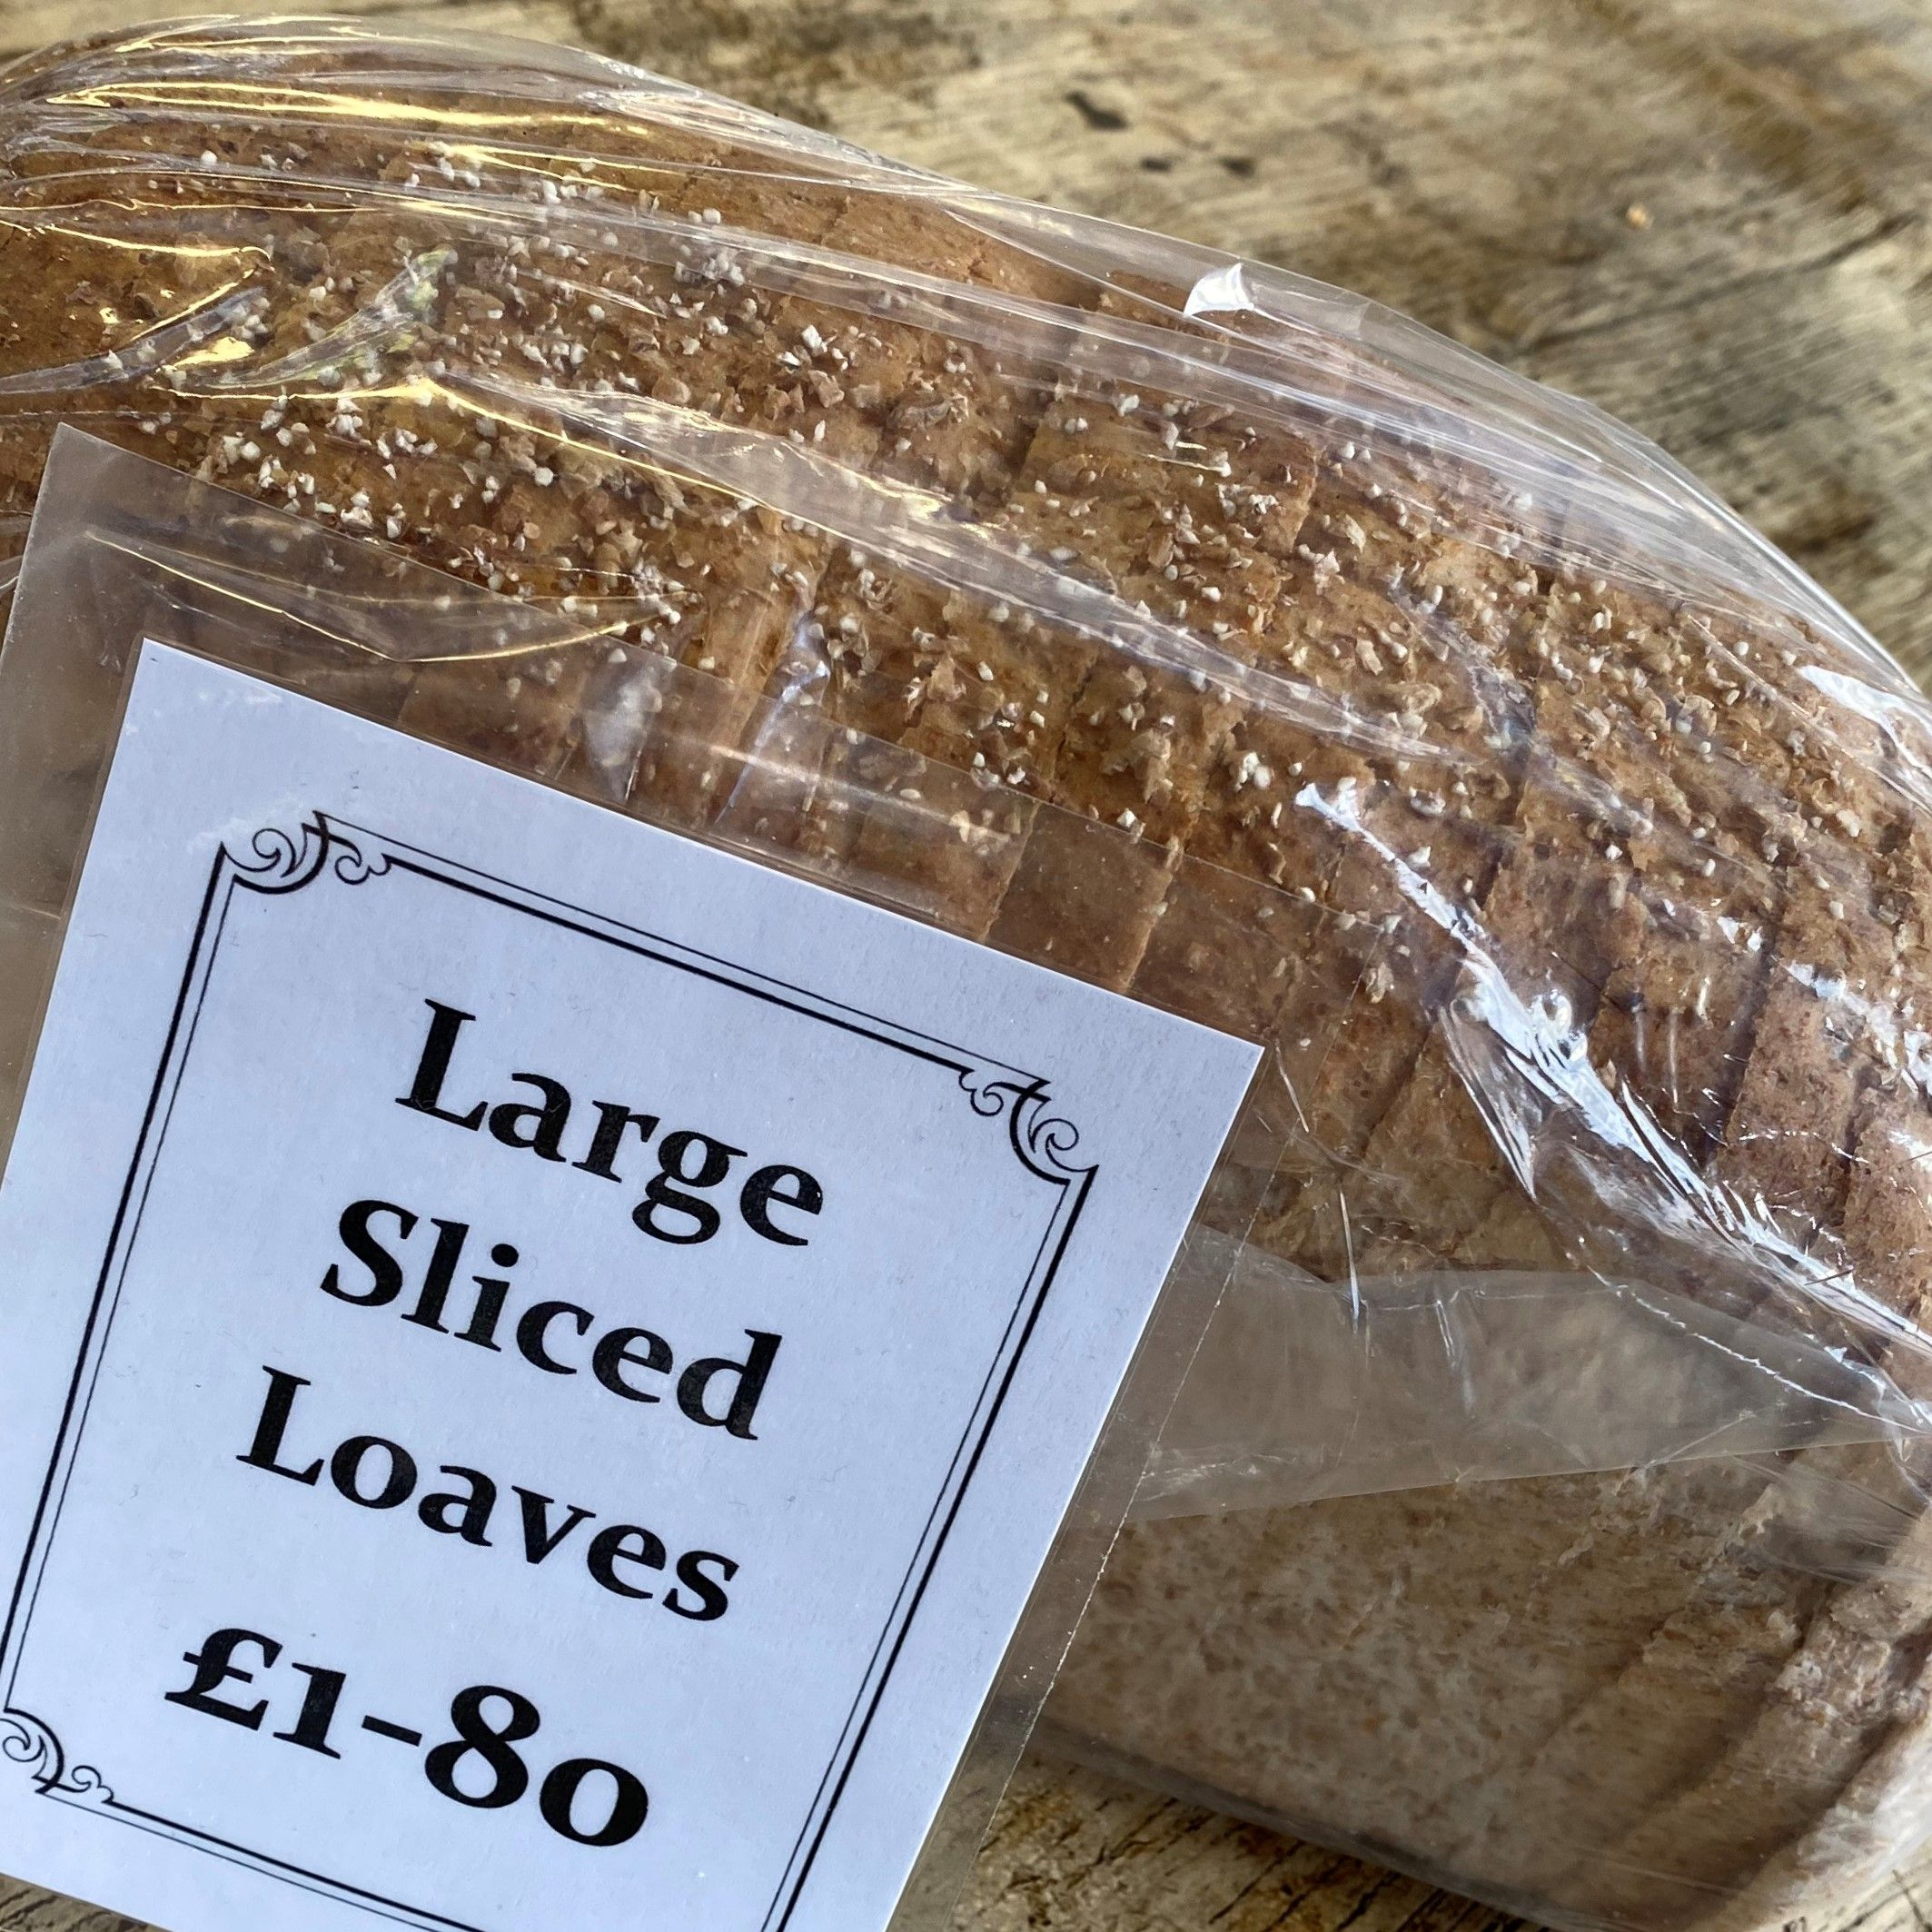 Large sliced wholemeal - £1.80